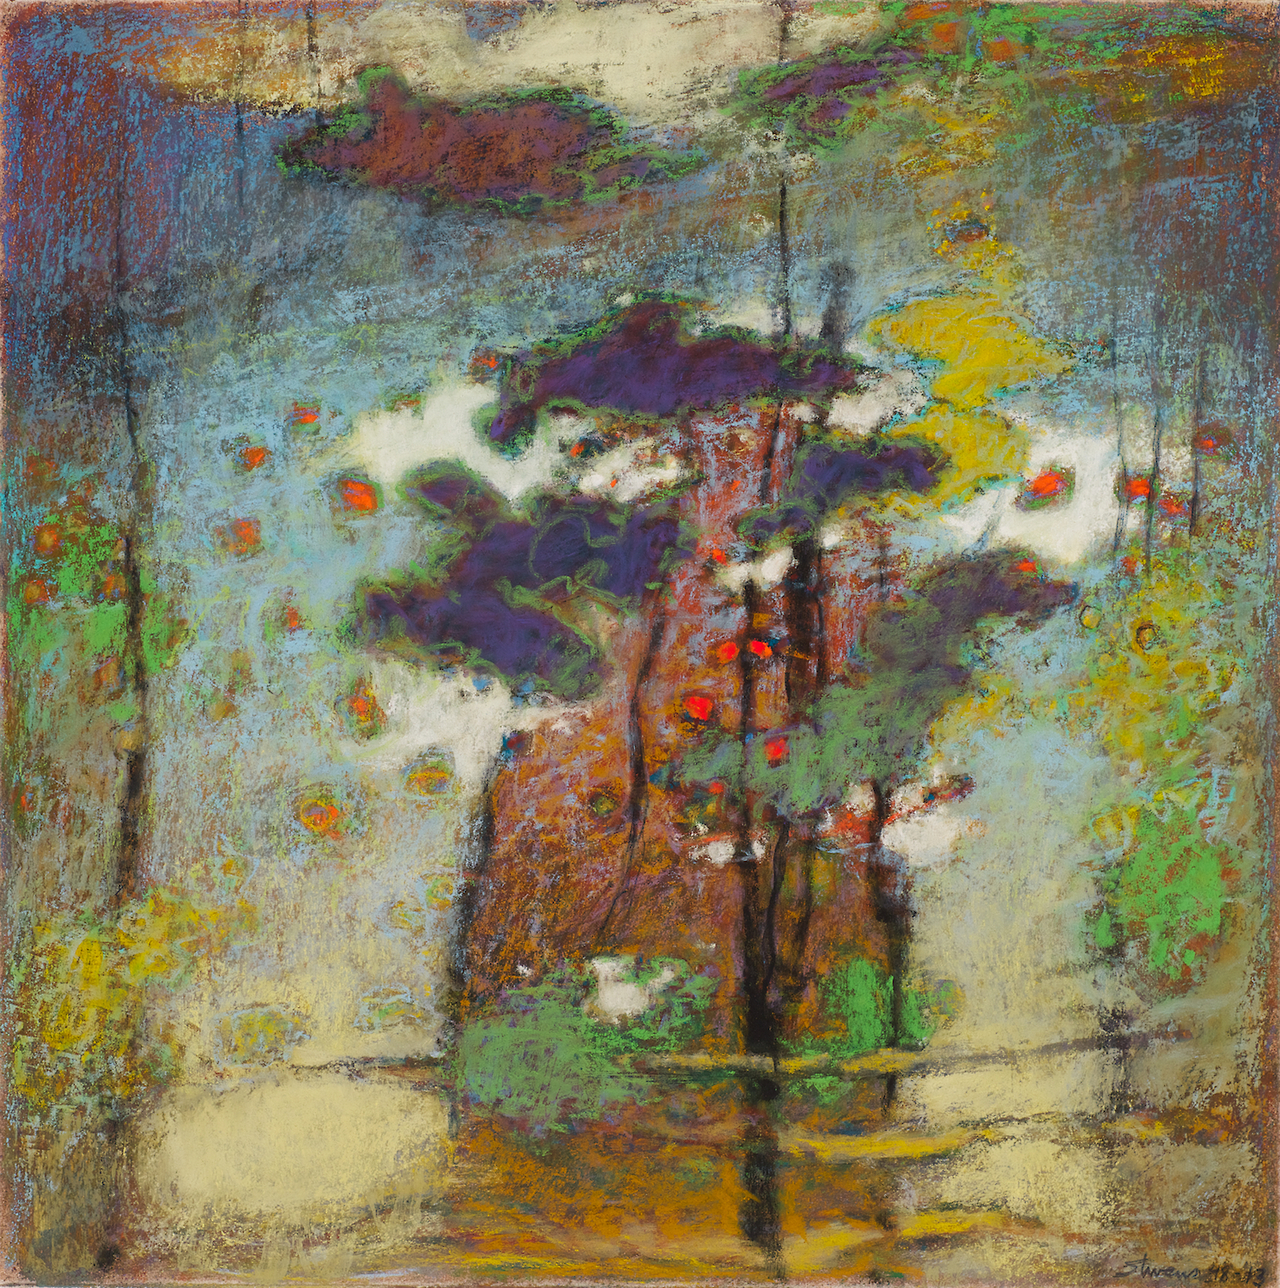 48-13 | pastel on paper | 14 x 14"